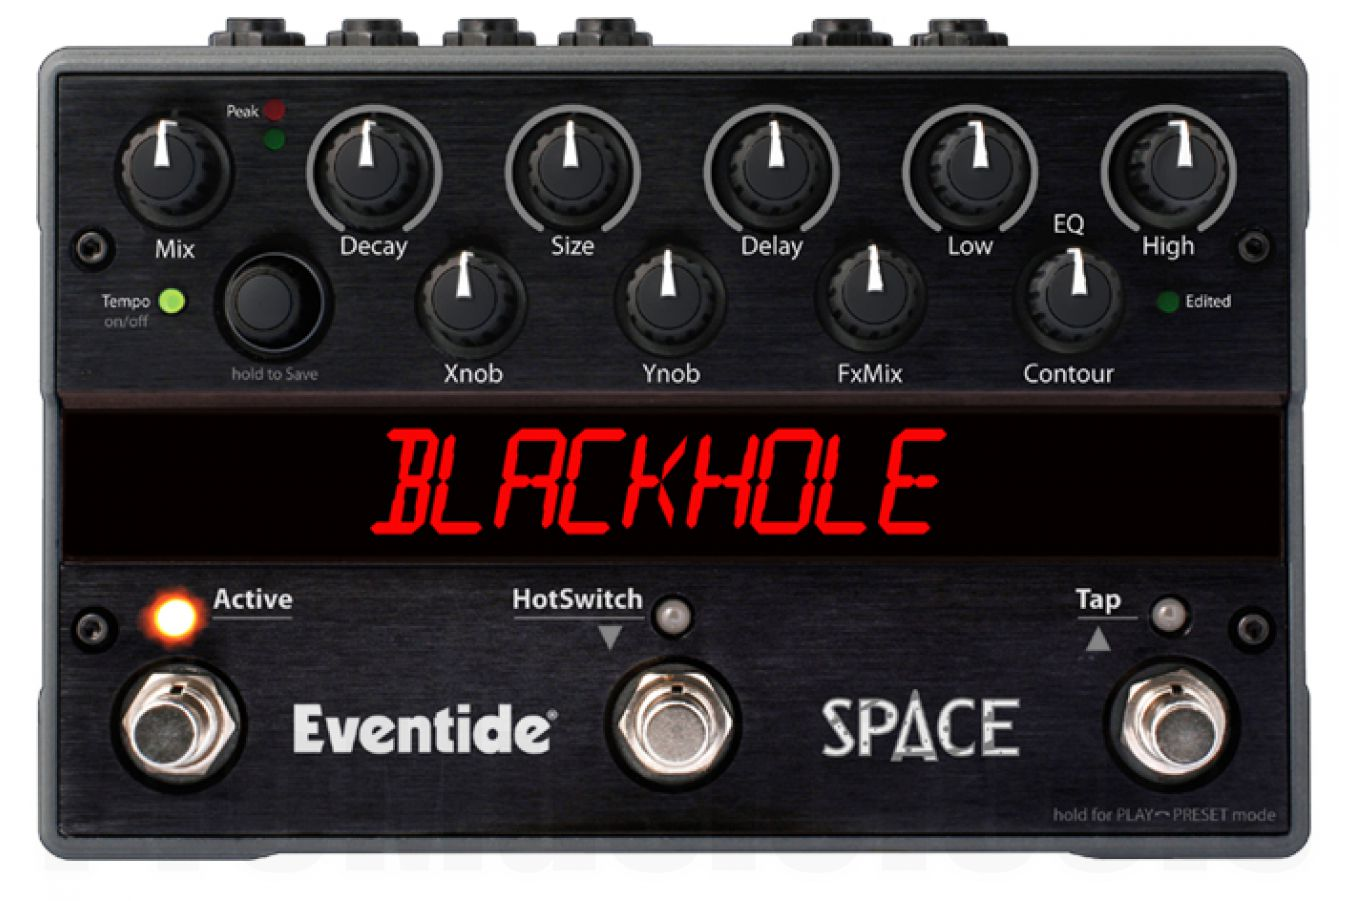 Eventide Space Reverb